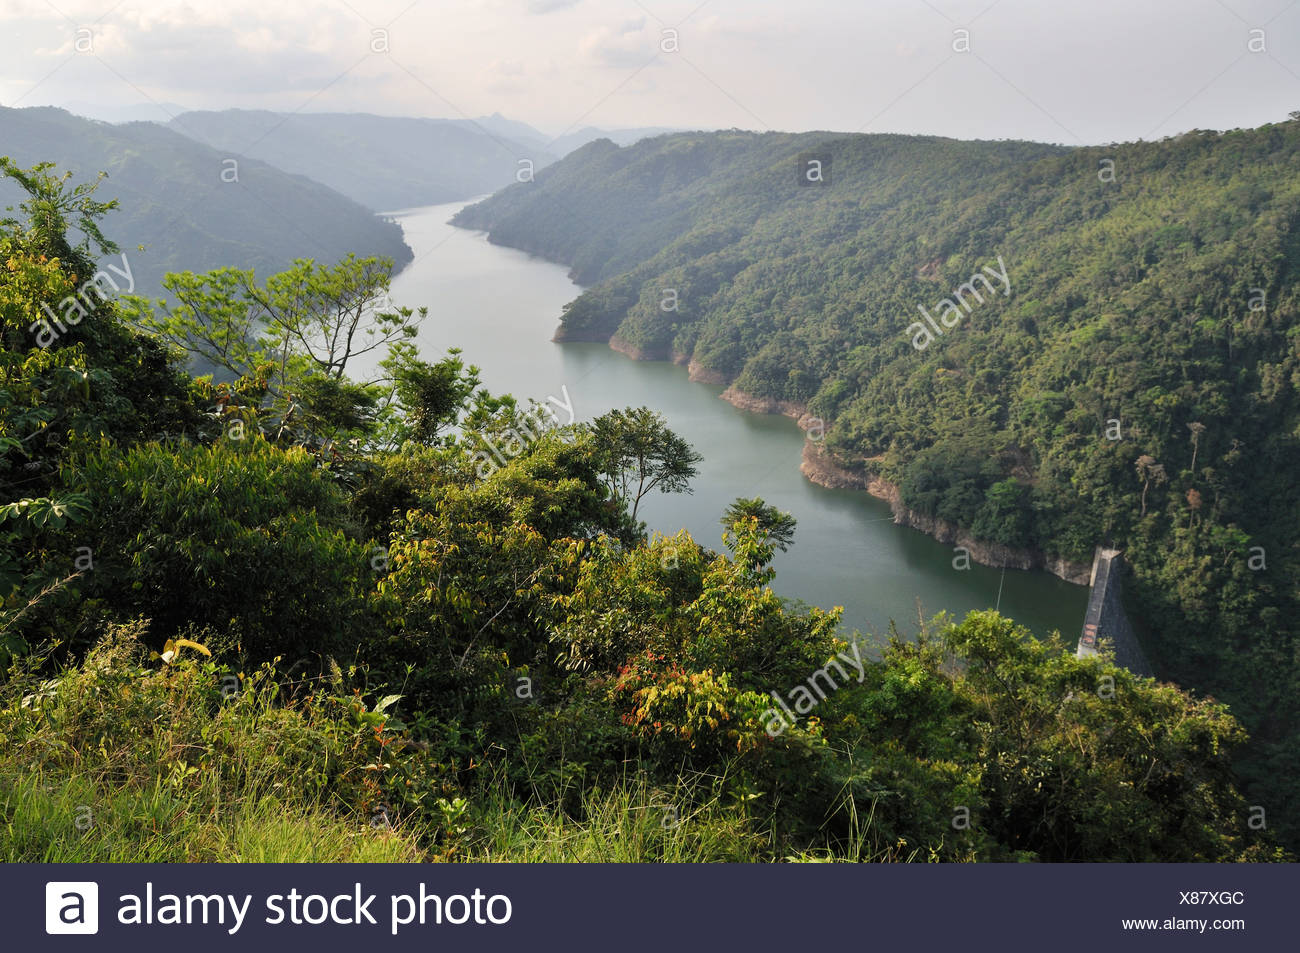 Hydroelectric Power Plants In South America Not Lossing Wiring Diagram Reservoir Of The La Miel Plant Caldas Colombia Rh Alamy Com Dam Solar